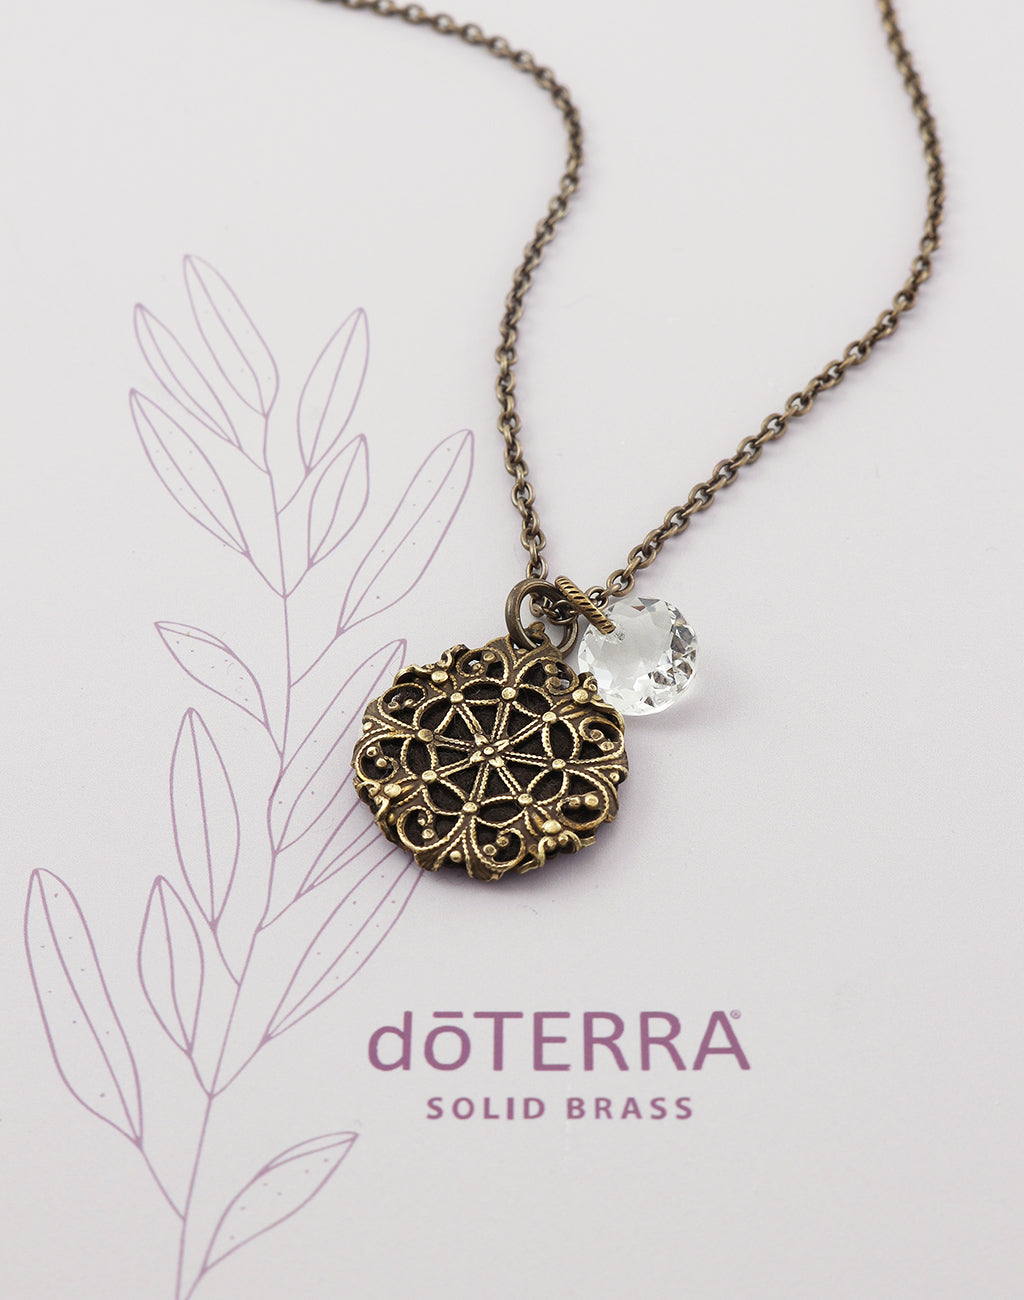 doTERRA DIRECTION Diffuser Necklace